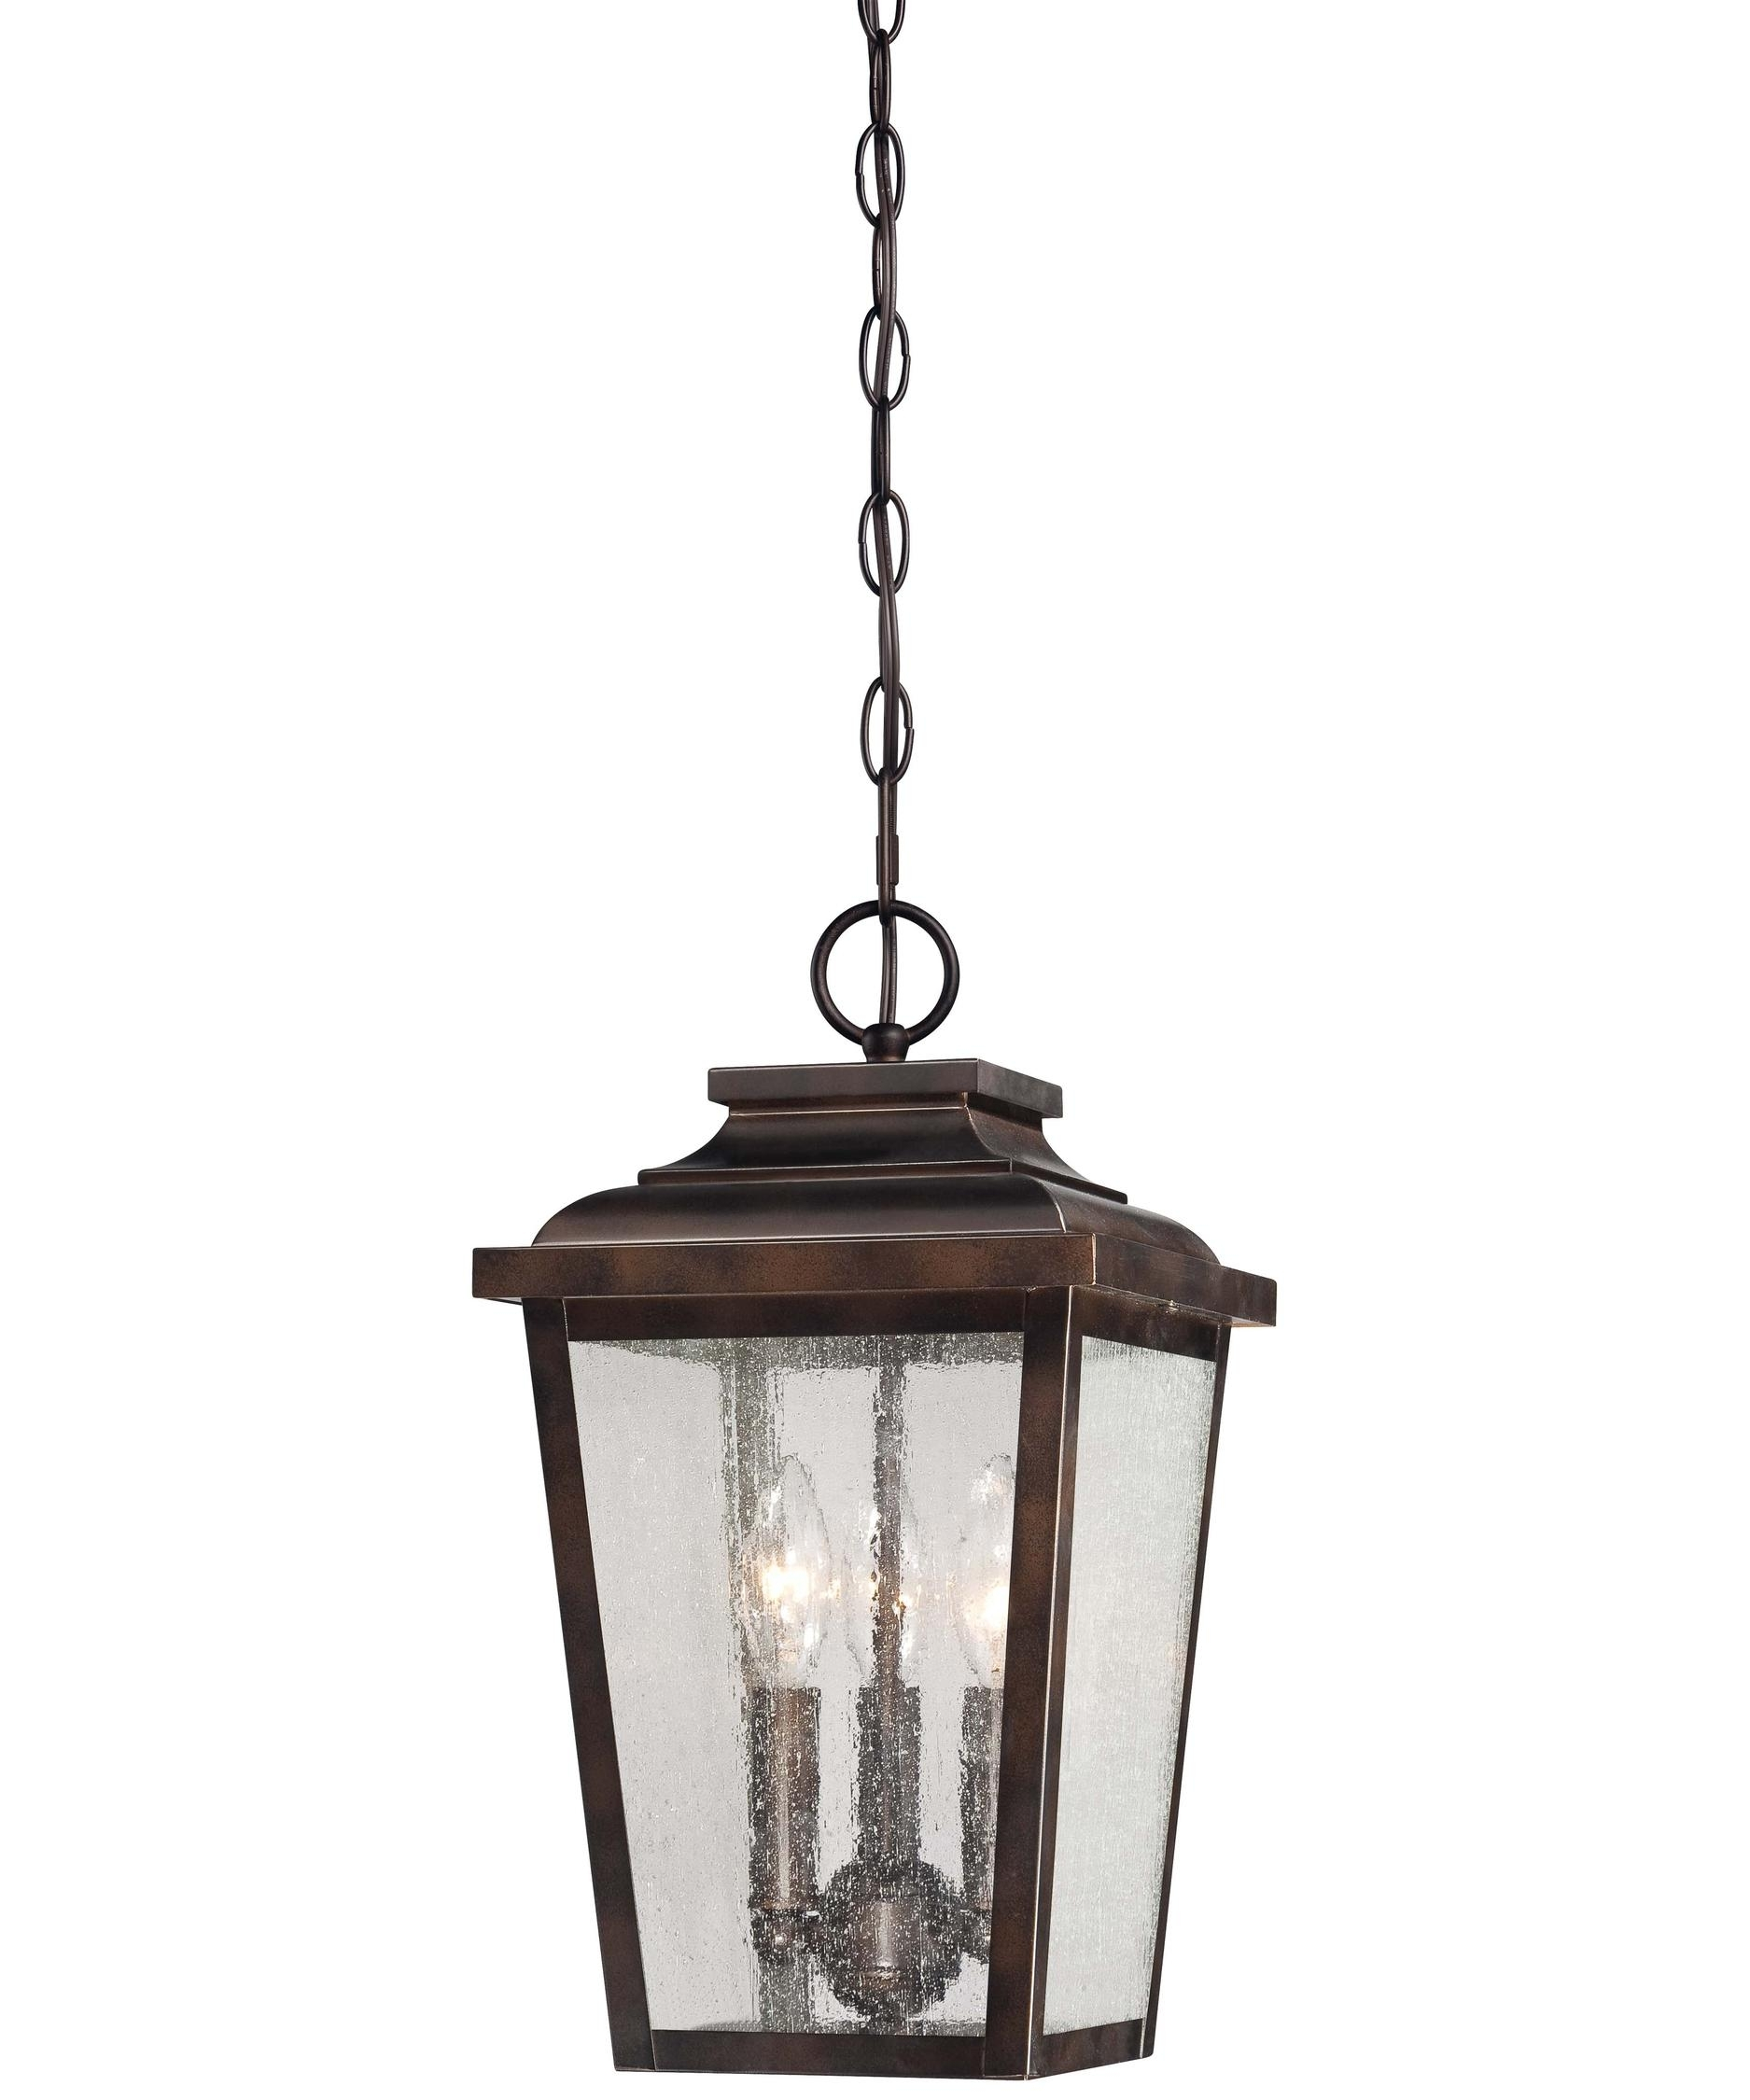 Minka Lavery 72174 Irvington Manor 9 Inch Wide 3 Light Outdoor Throughout Outdoor Hanging Glass Lights (View 4 of 15)